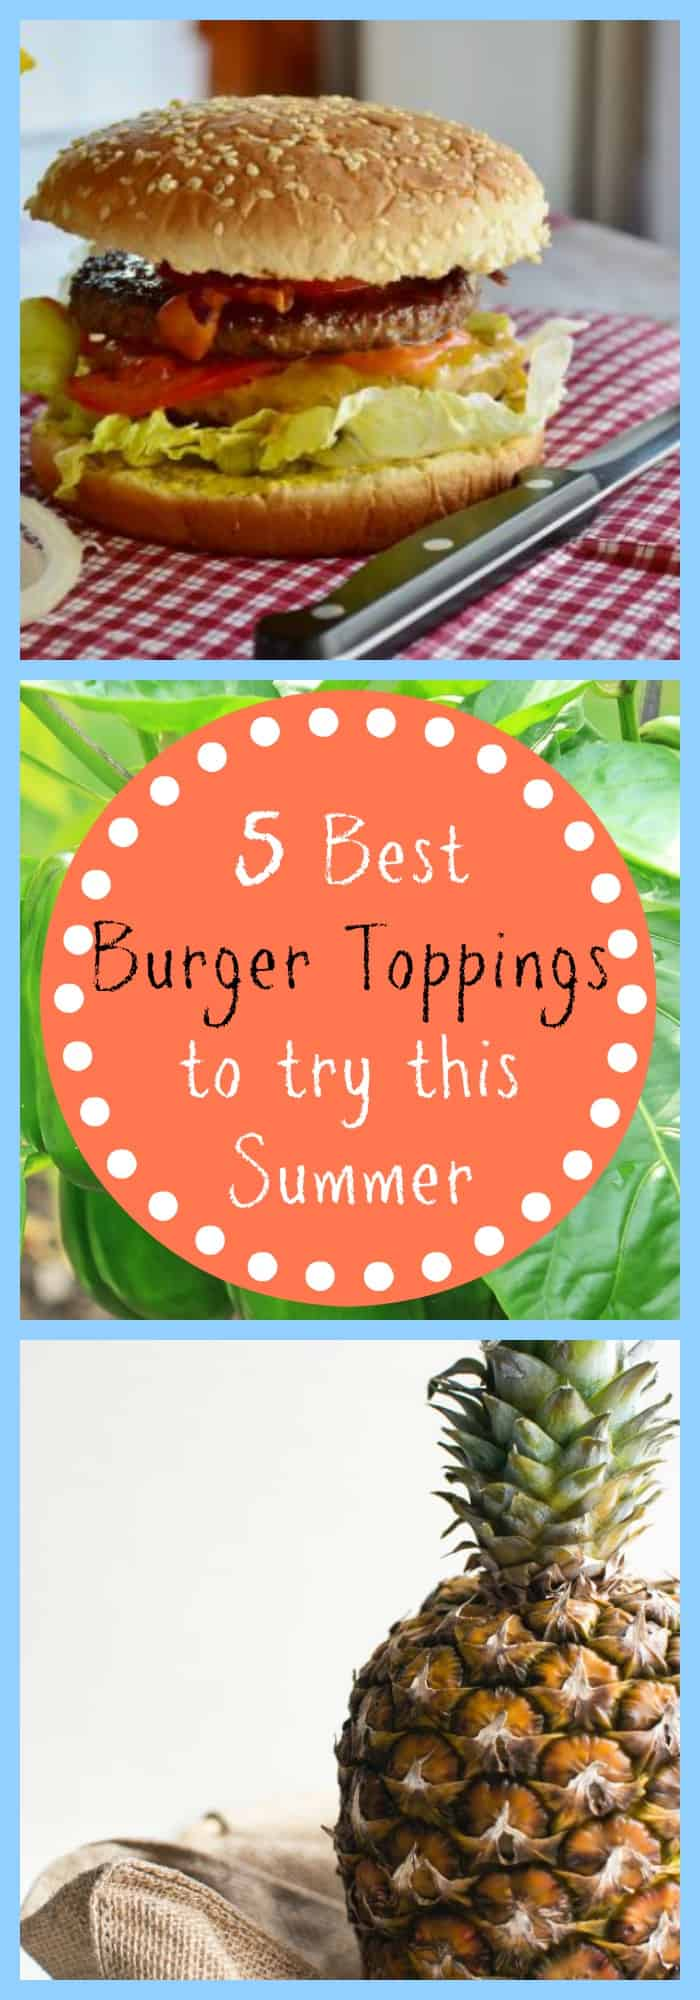 5 Best Burger Toppings to try this Summer